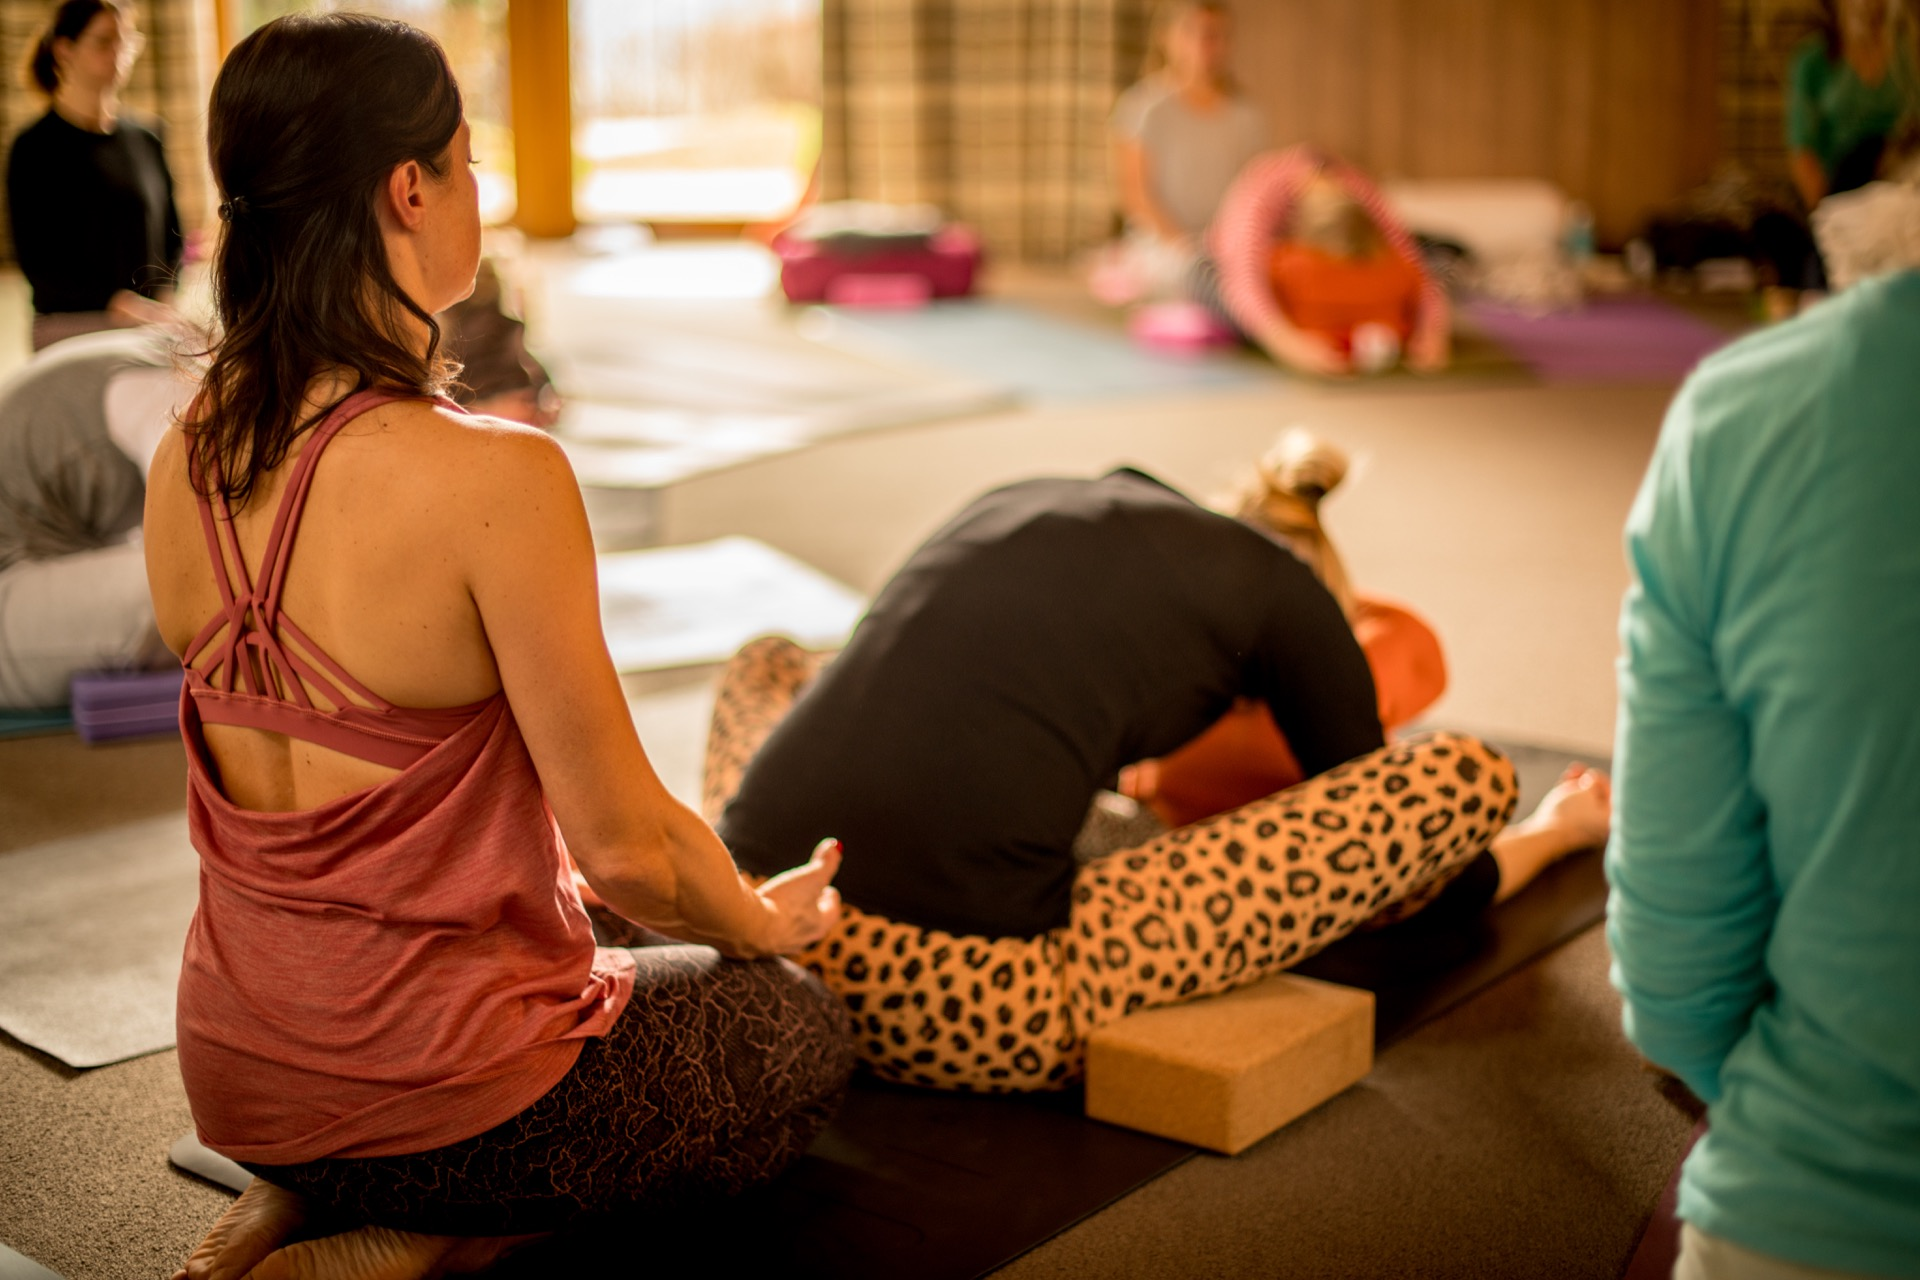 A-New-Beginning-Hie-Kim-Yoga-Retreat-Alina-Matis-Photography-014 - Hie Kim Yoga - Yoga Retreat - Yoga Workshops und Reisen